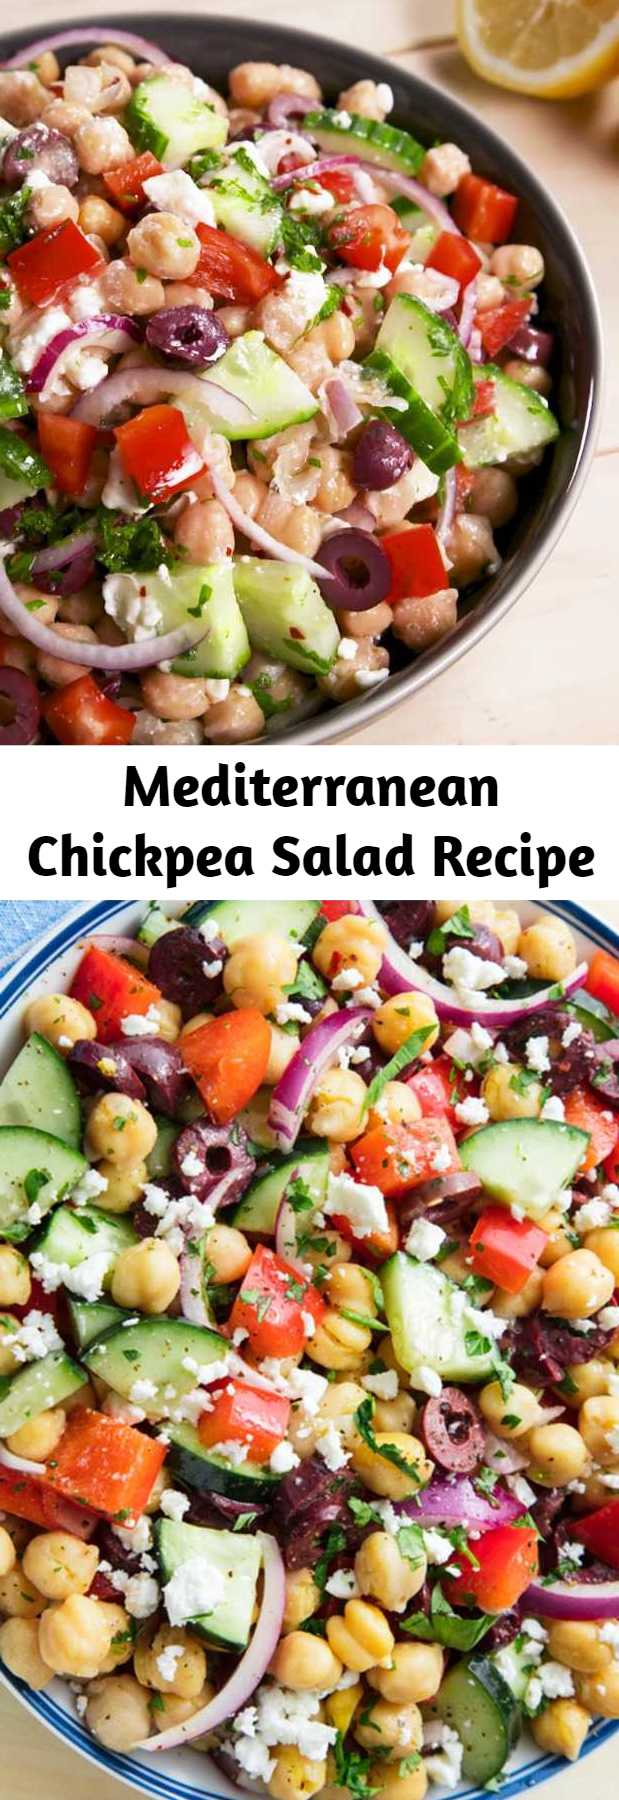 Mediterranean Chickpea Salad Recipe - Thanks to the chickpeas, this salad will keep you full for hours. It's satisfying in a way that leafy greens never could be. Sorry we're not sorry, kale. #easyrecipe #salad #mediterranean #summer #sidedish